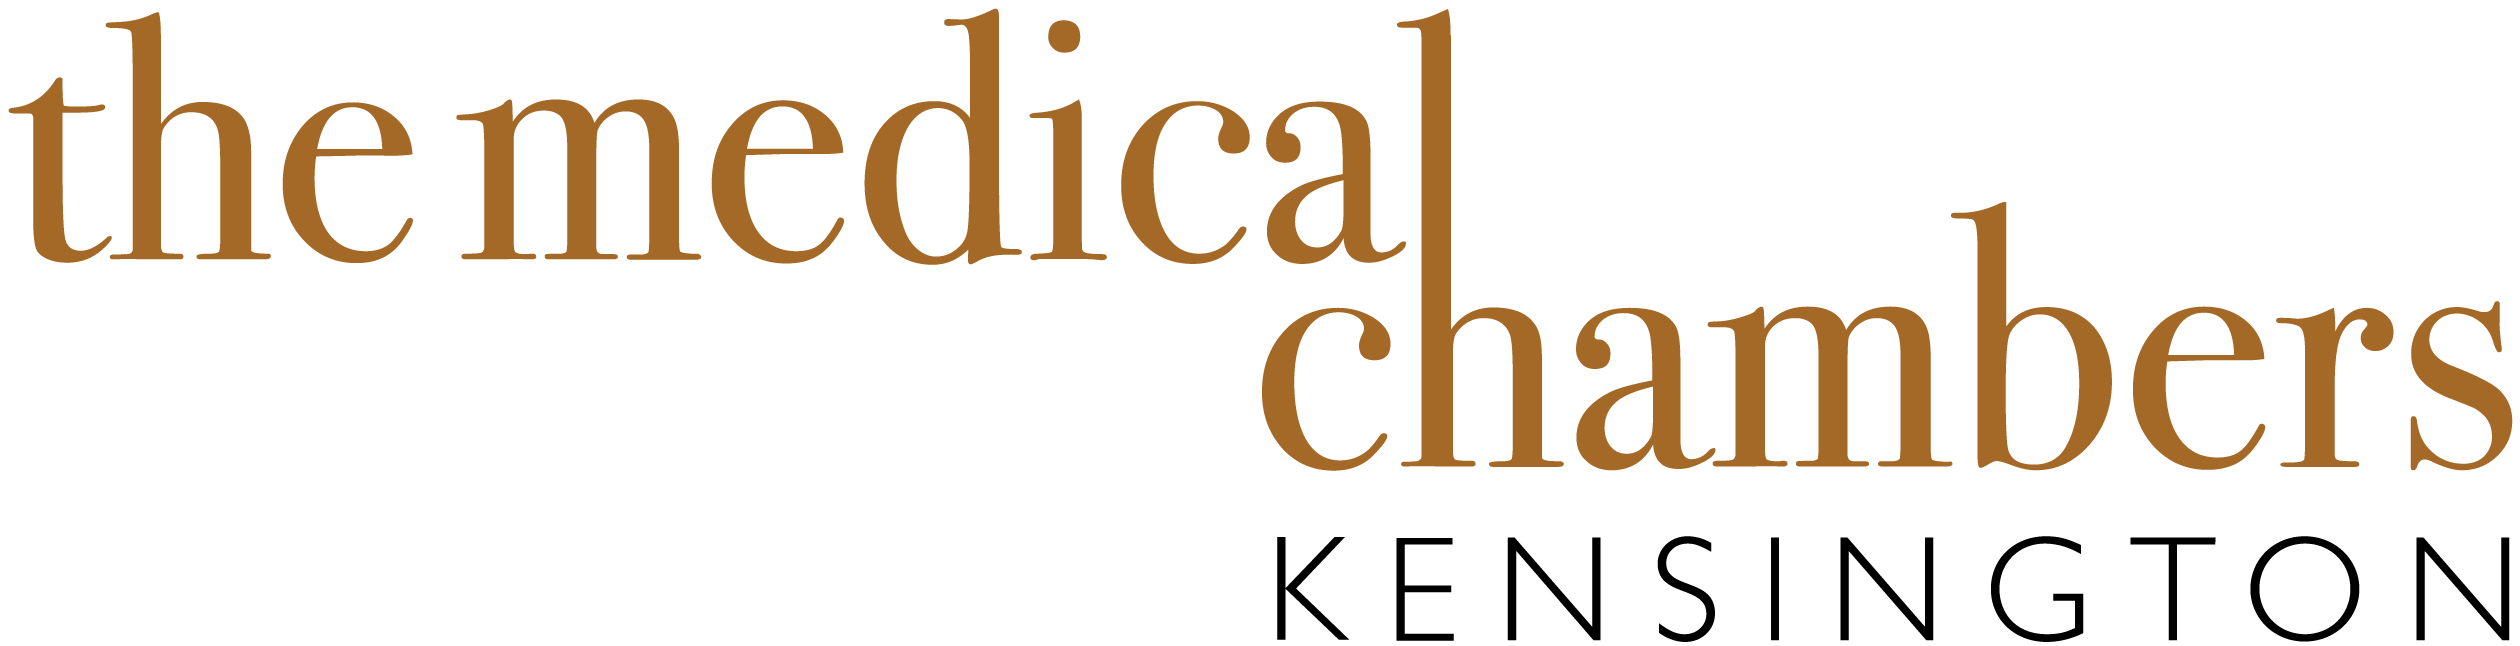 The Medical Chambers Kensington logo